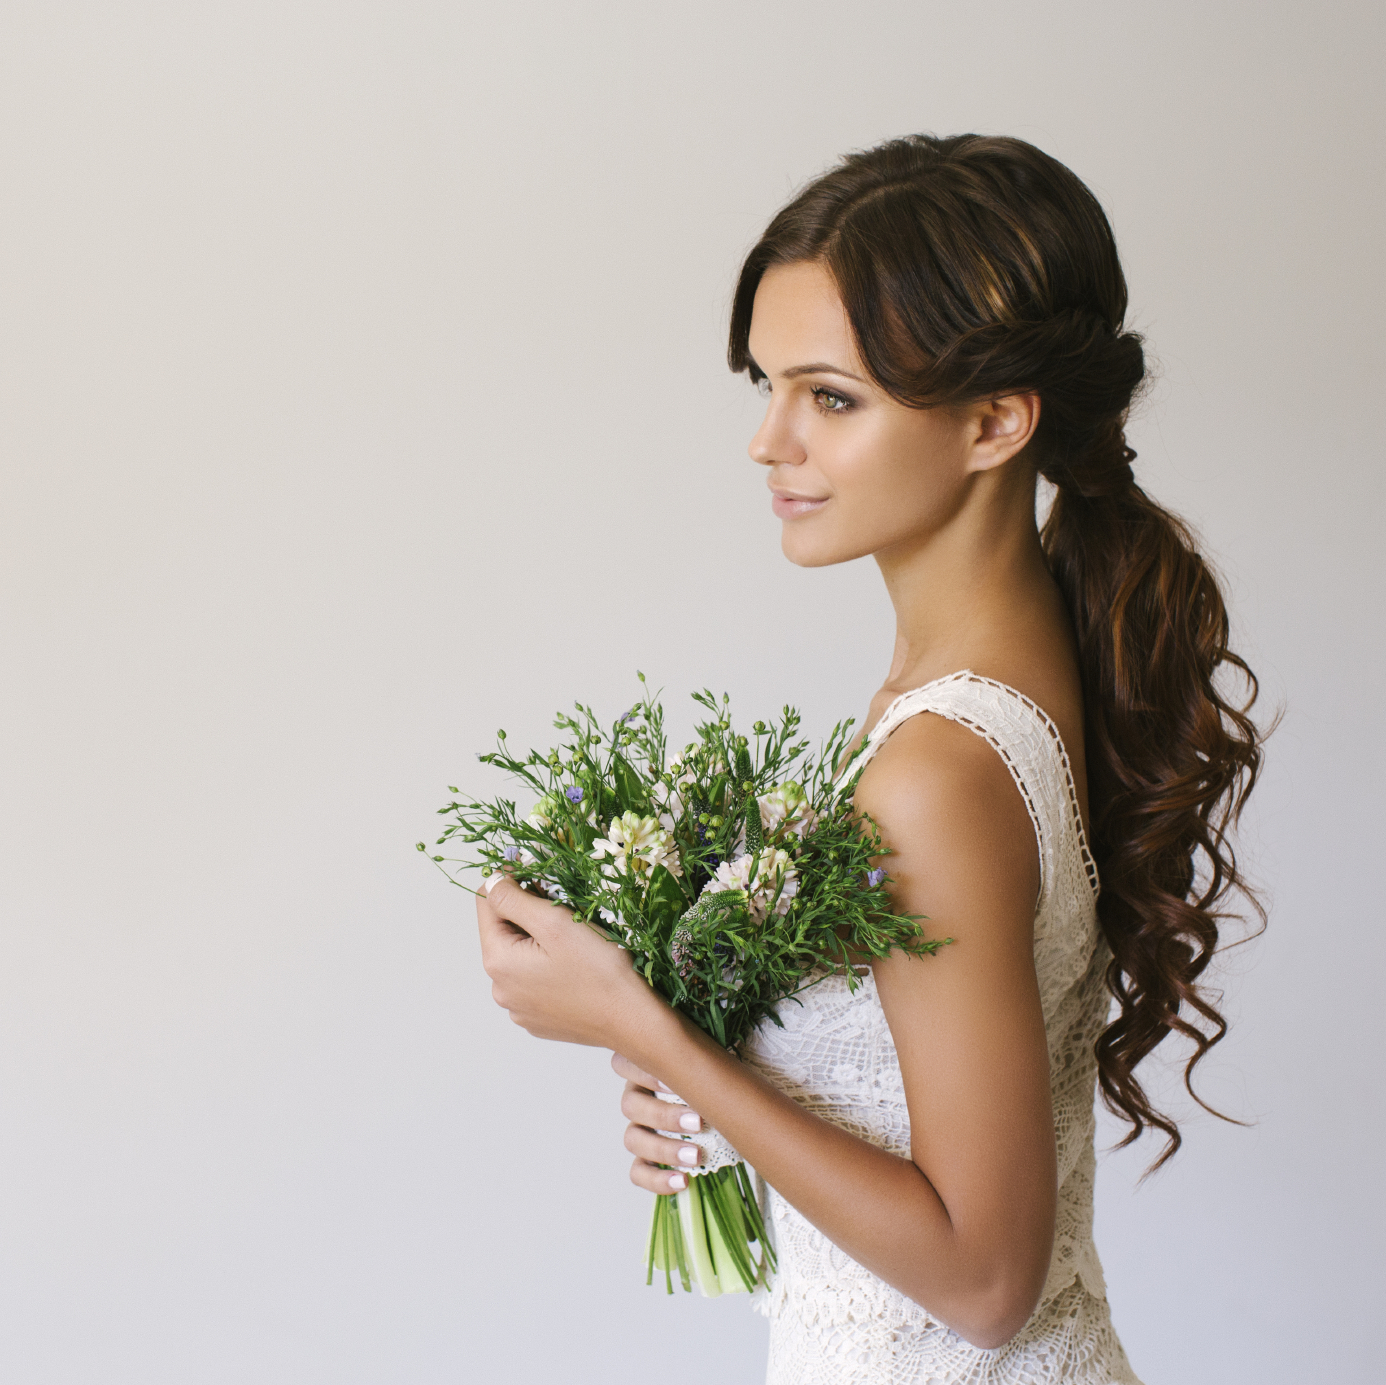 Tips & Ideas to Style Your Wedding Day Look